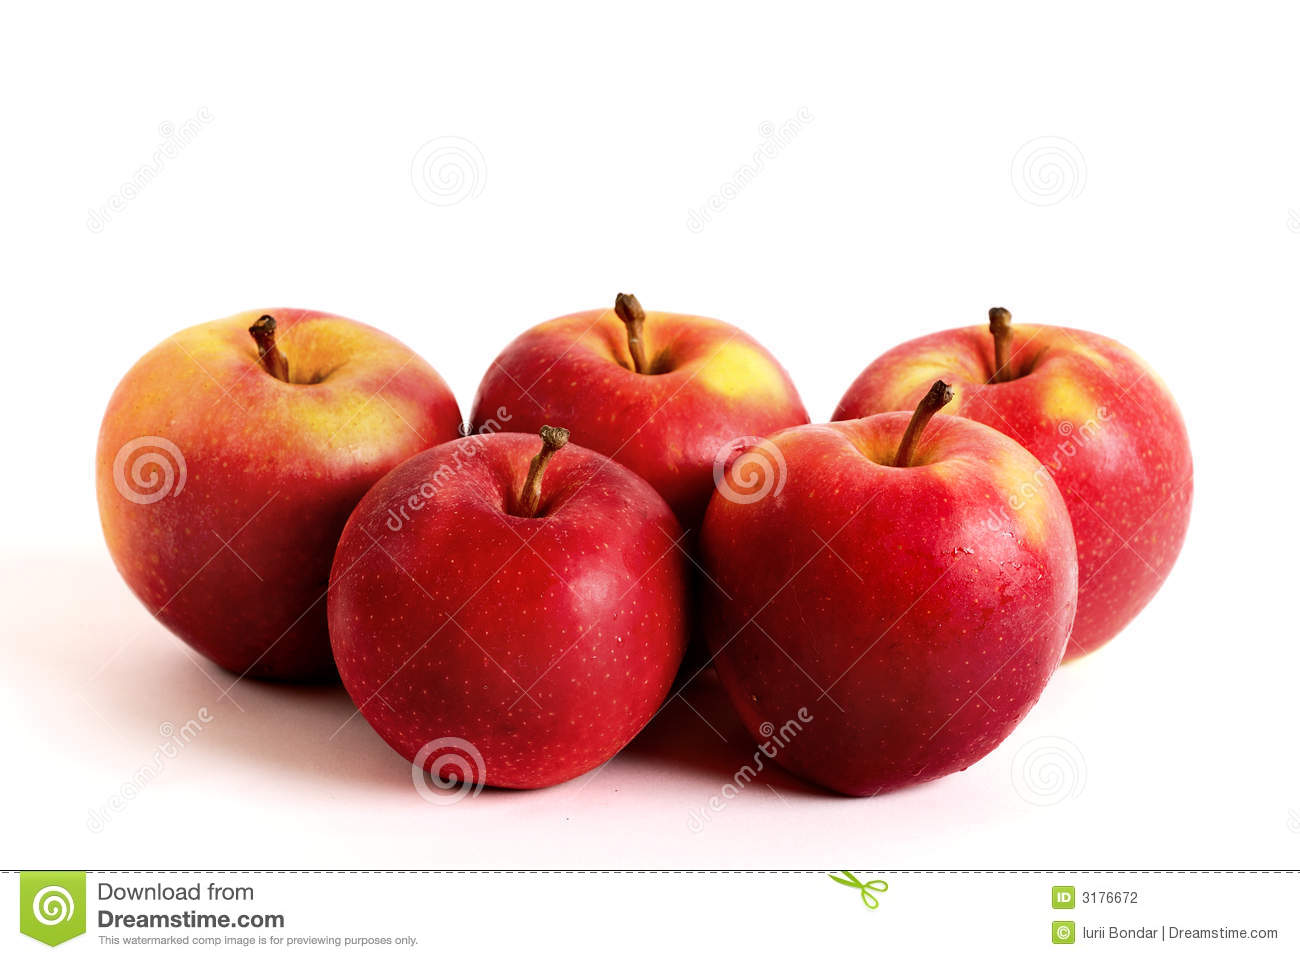 how tall is five apples